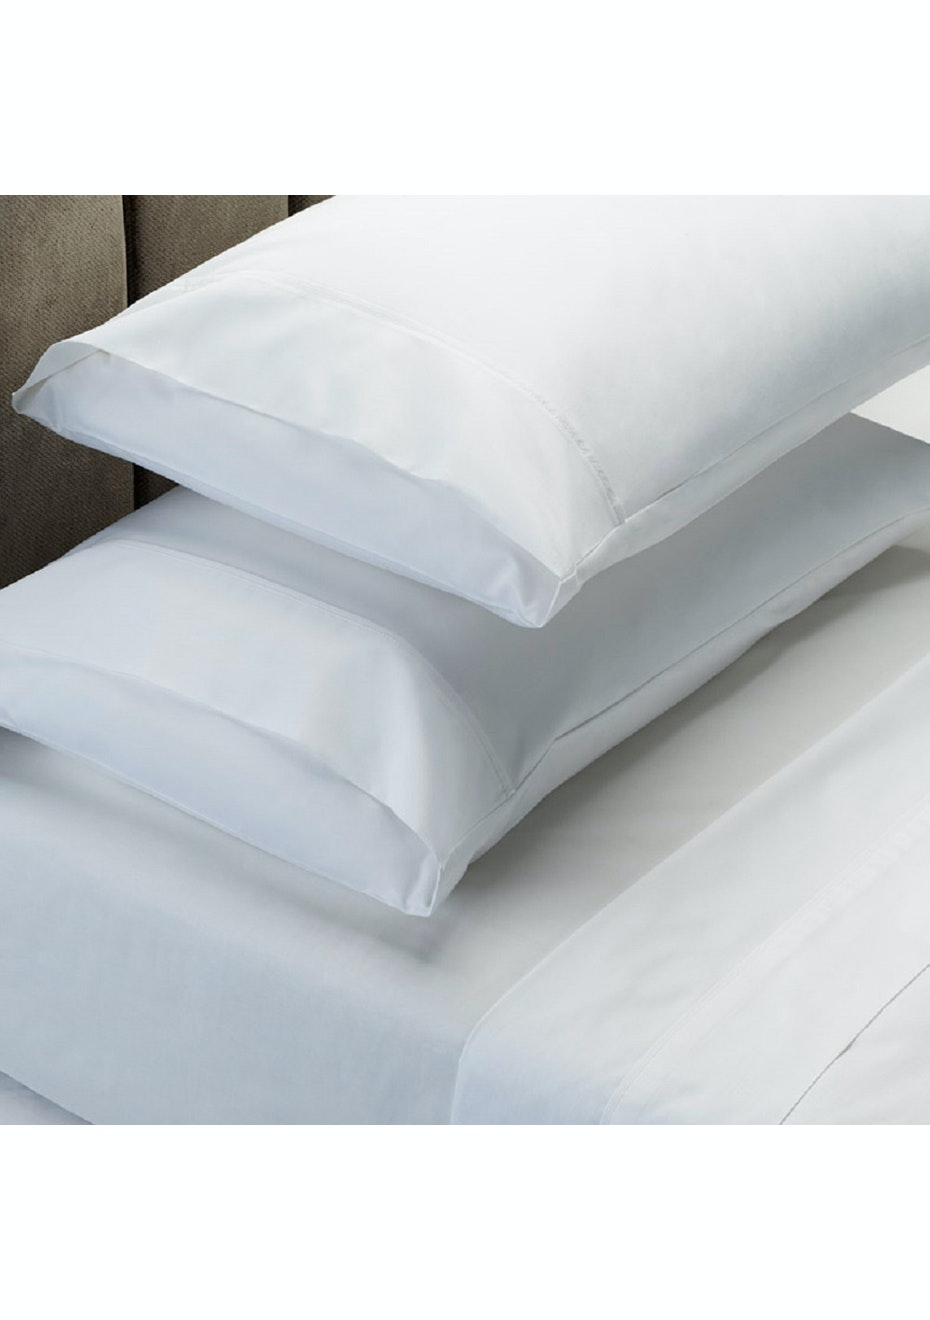 Park Avenue 1000 Thread count 100% Egyptian Cotton Sheet sets Mega Queen - White